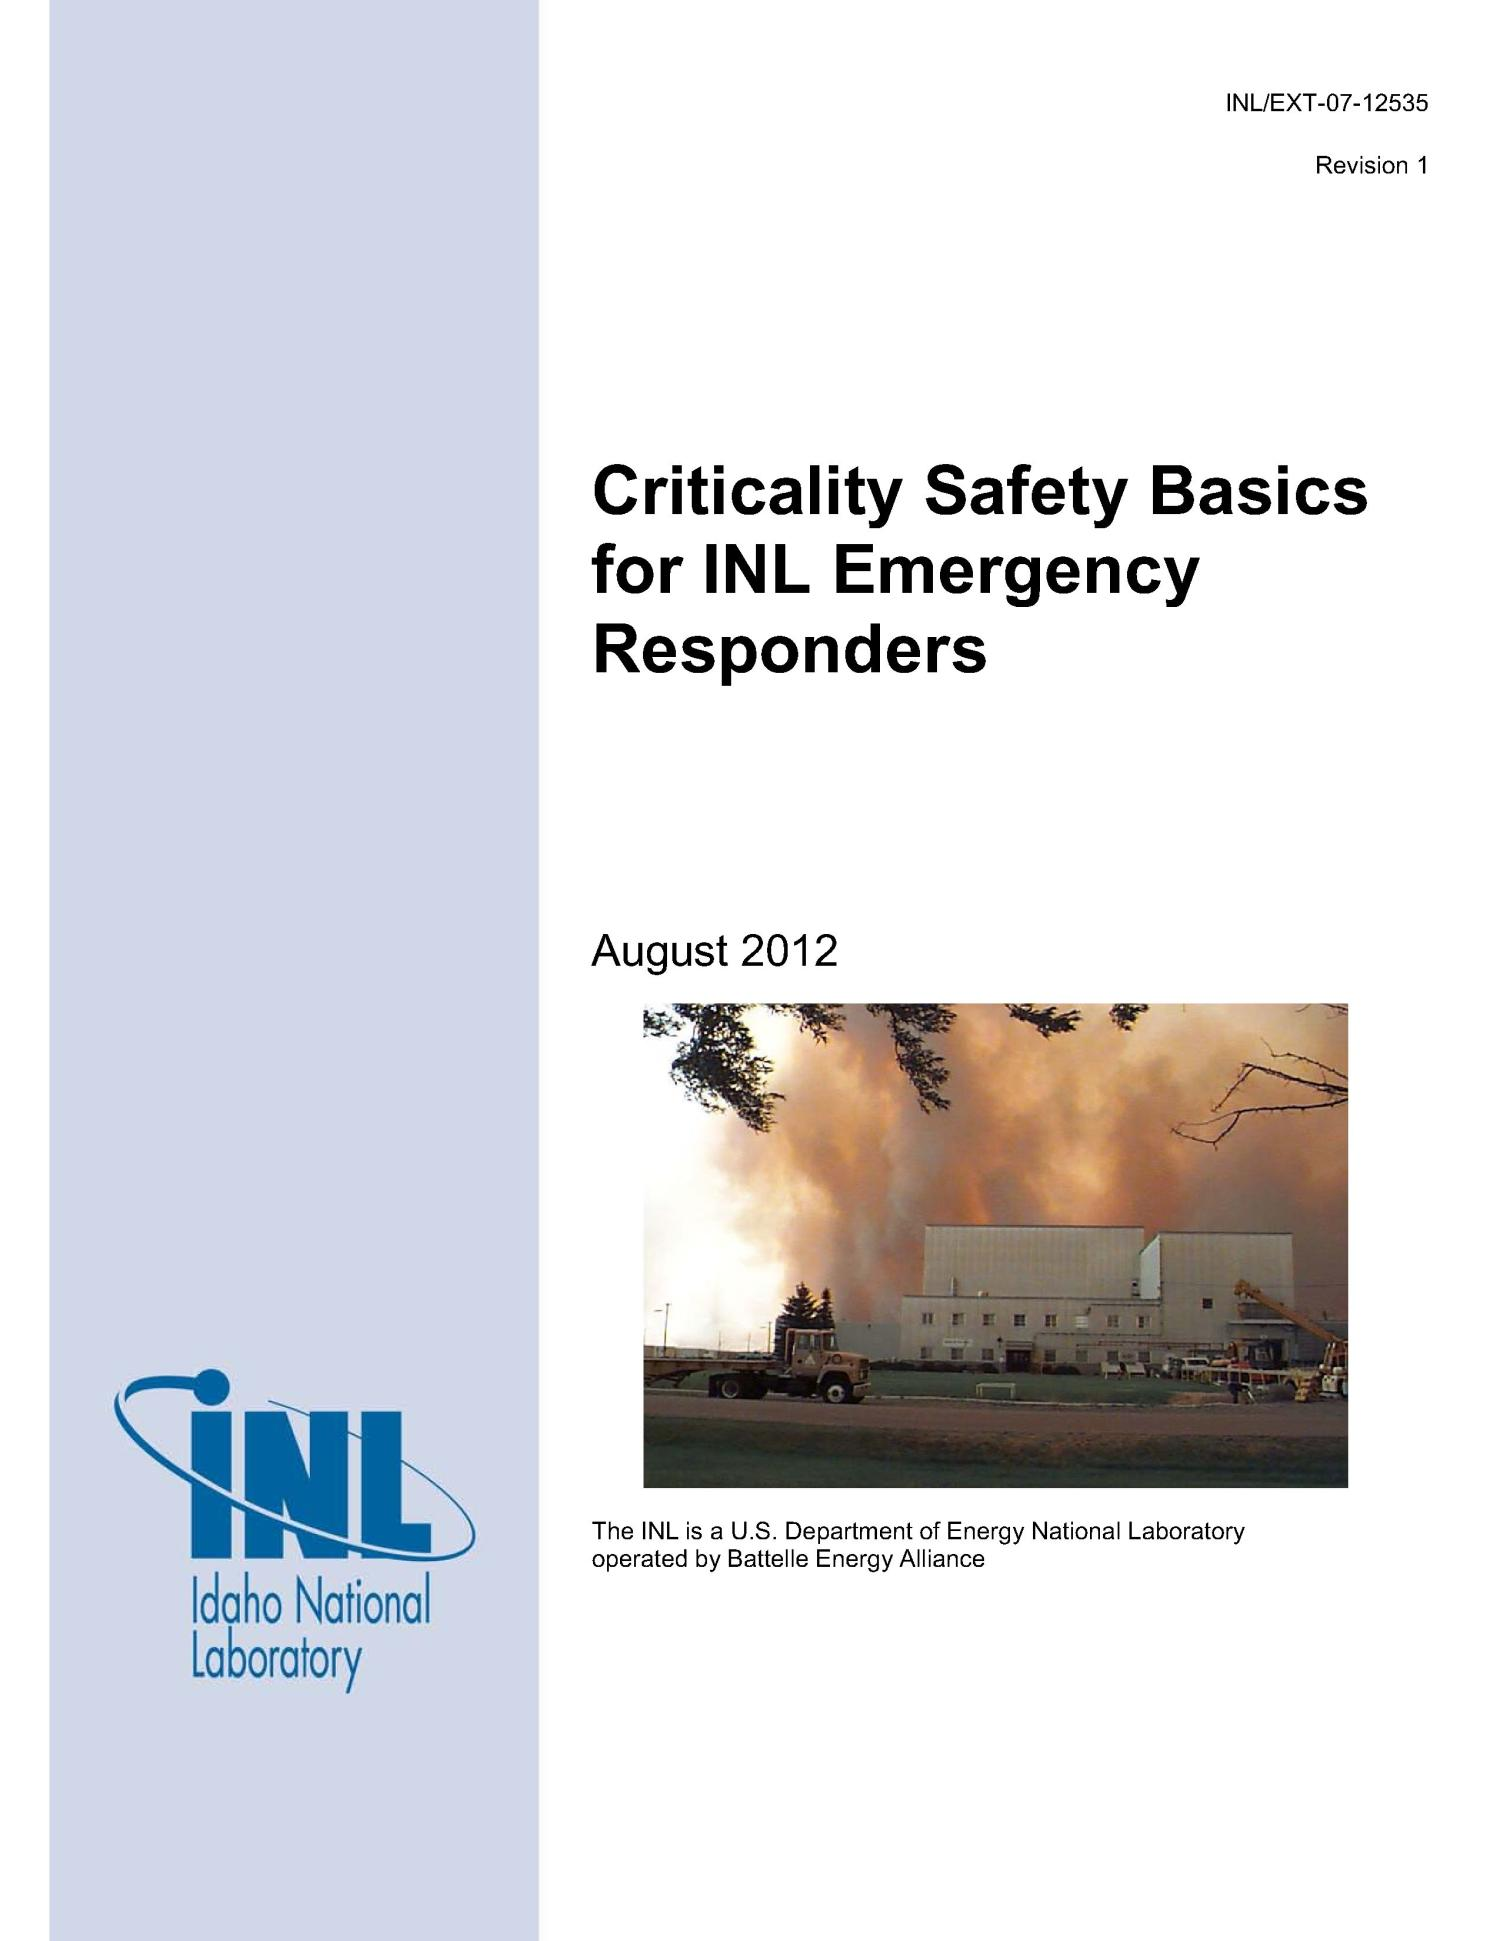 Criticality Safety Basics for INL Emergency Responders                                                                                                      [Sequence #]: 1 of 84